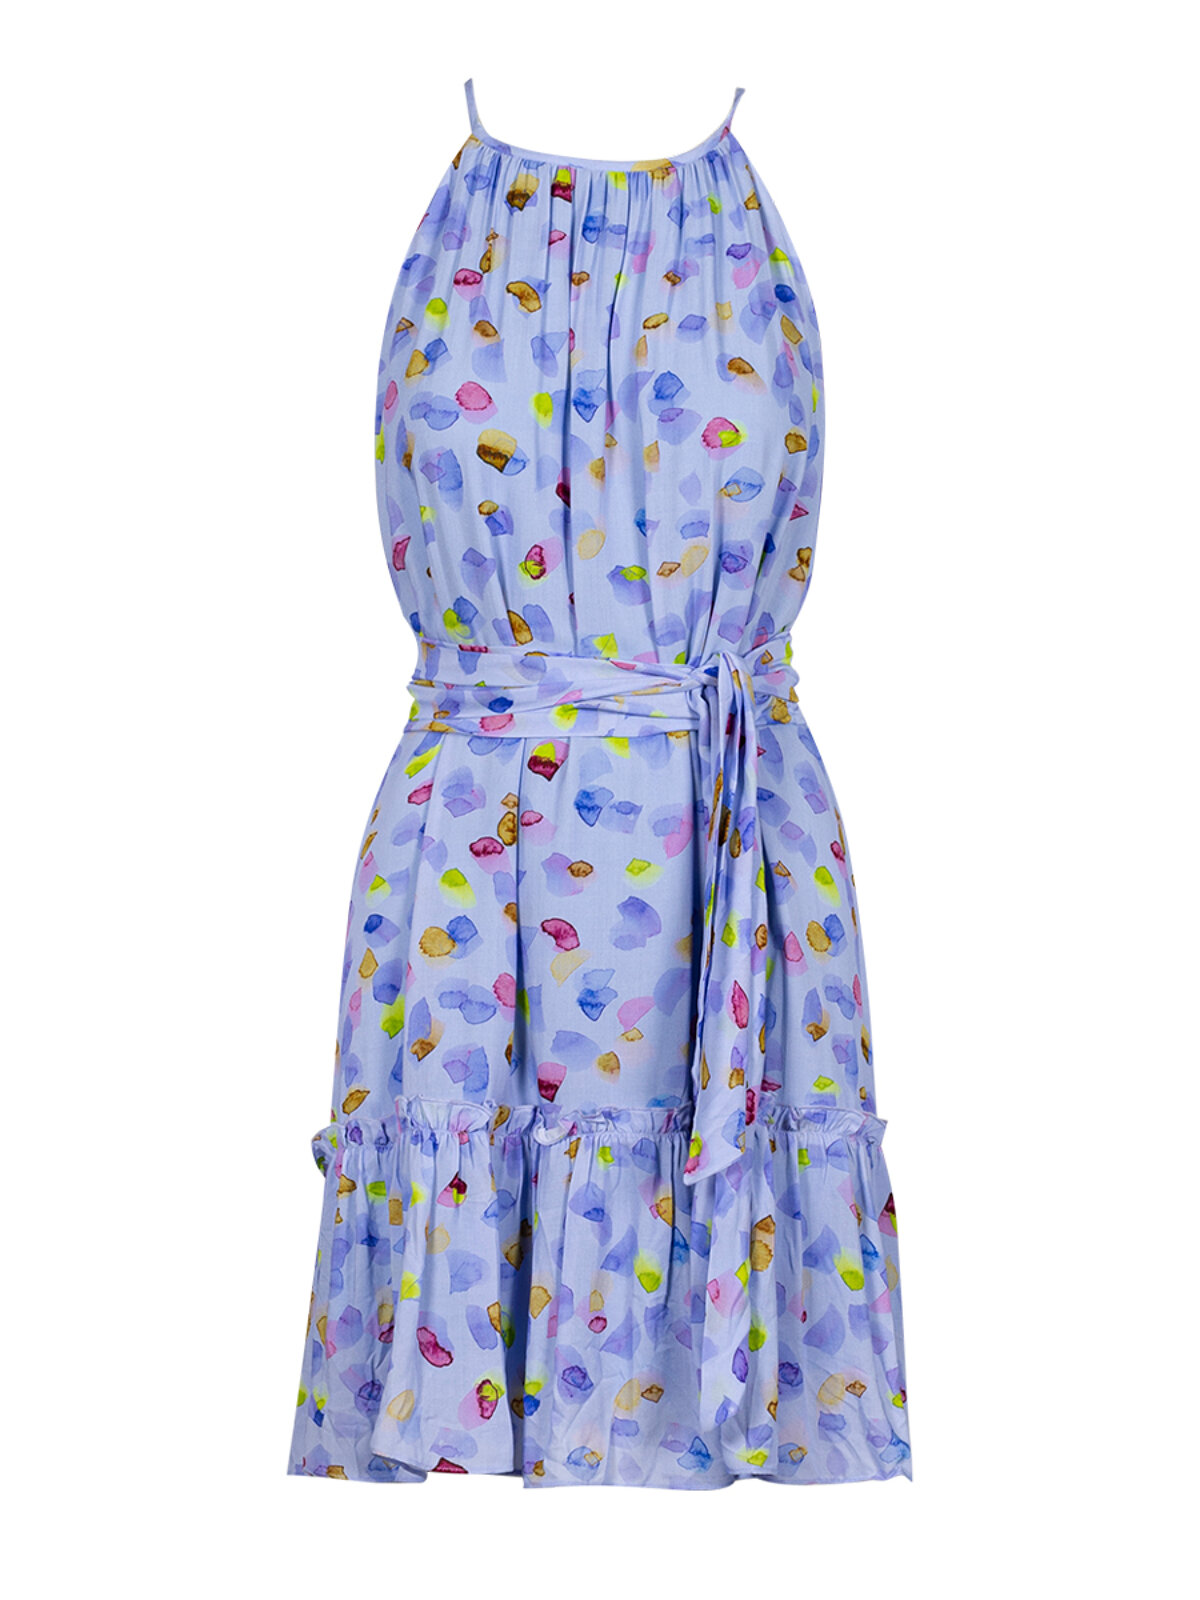 Delphine Ditsy Dress - Anonyme Designers